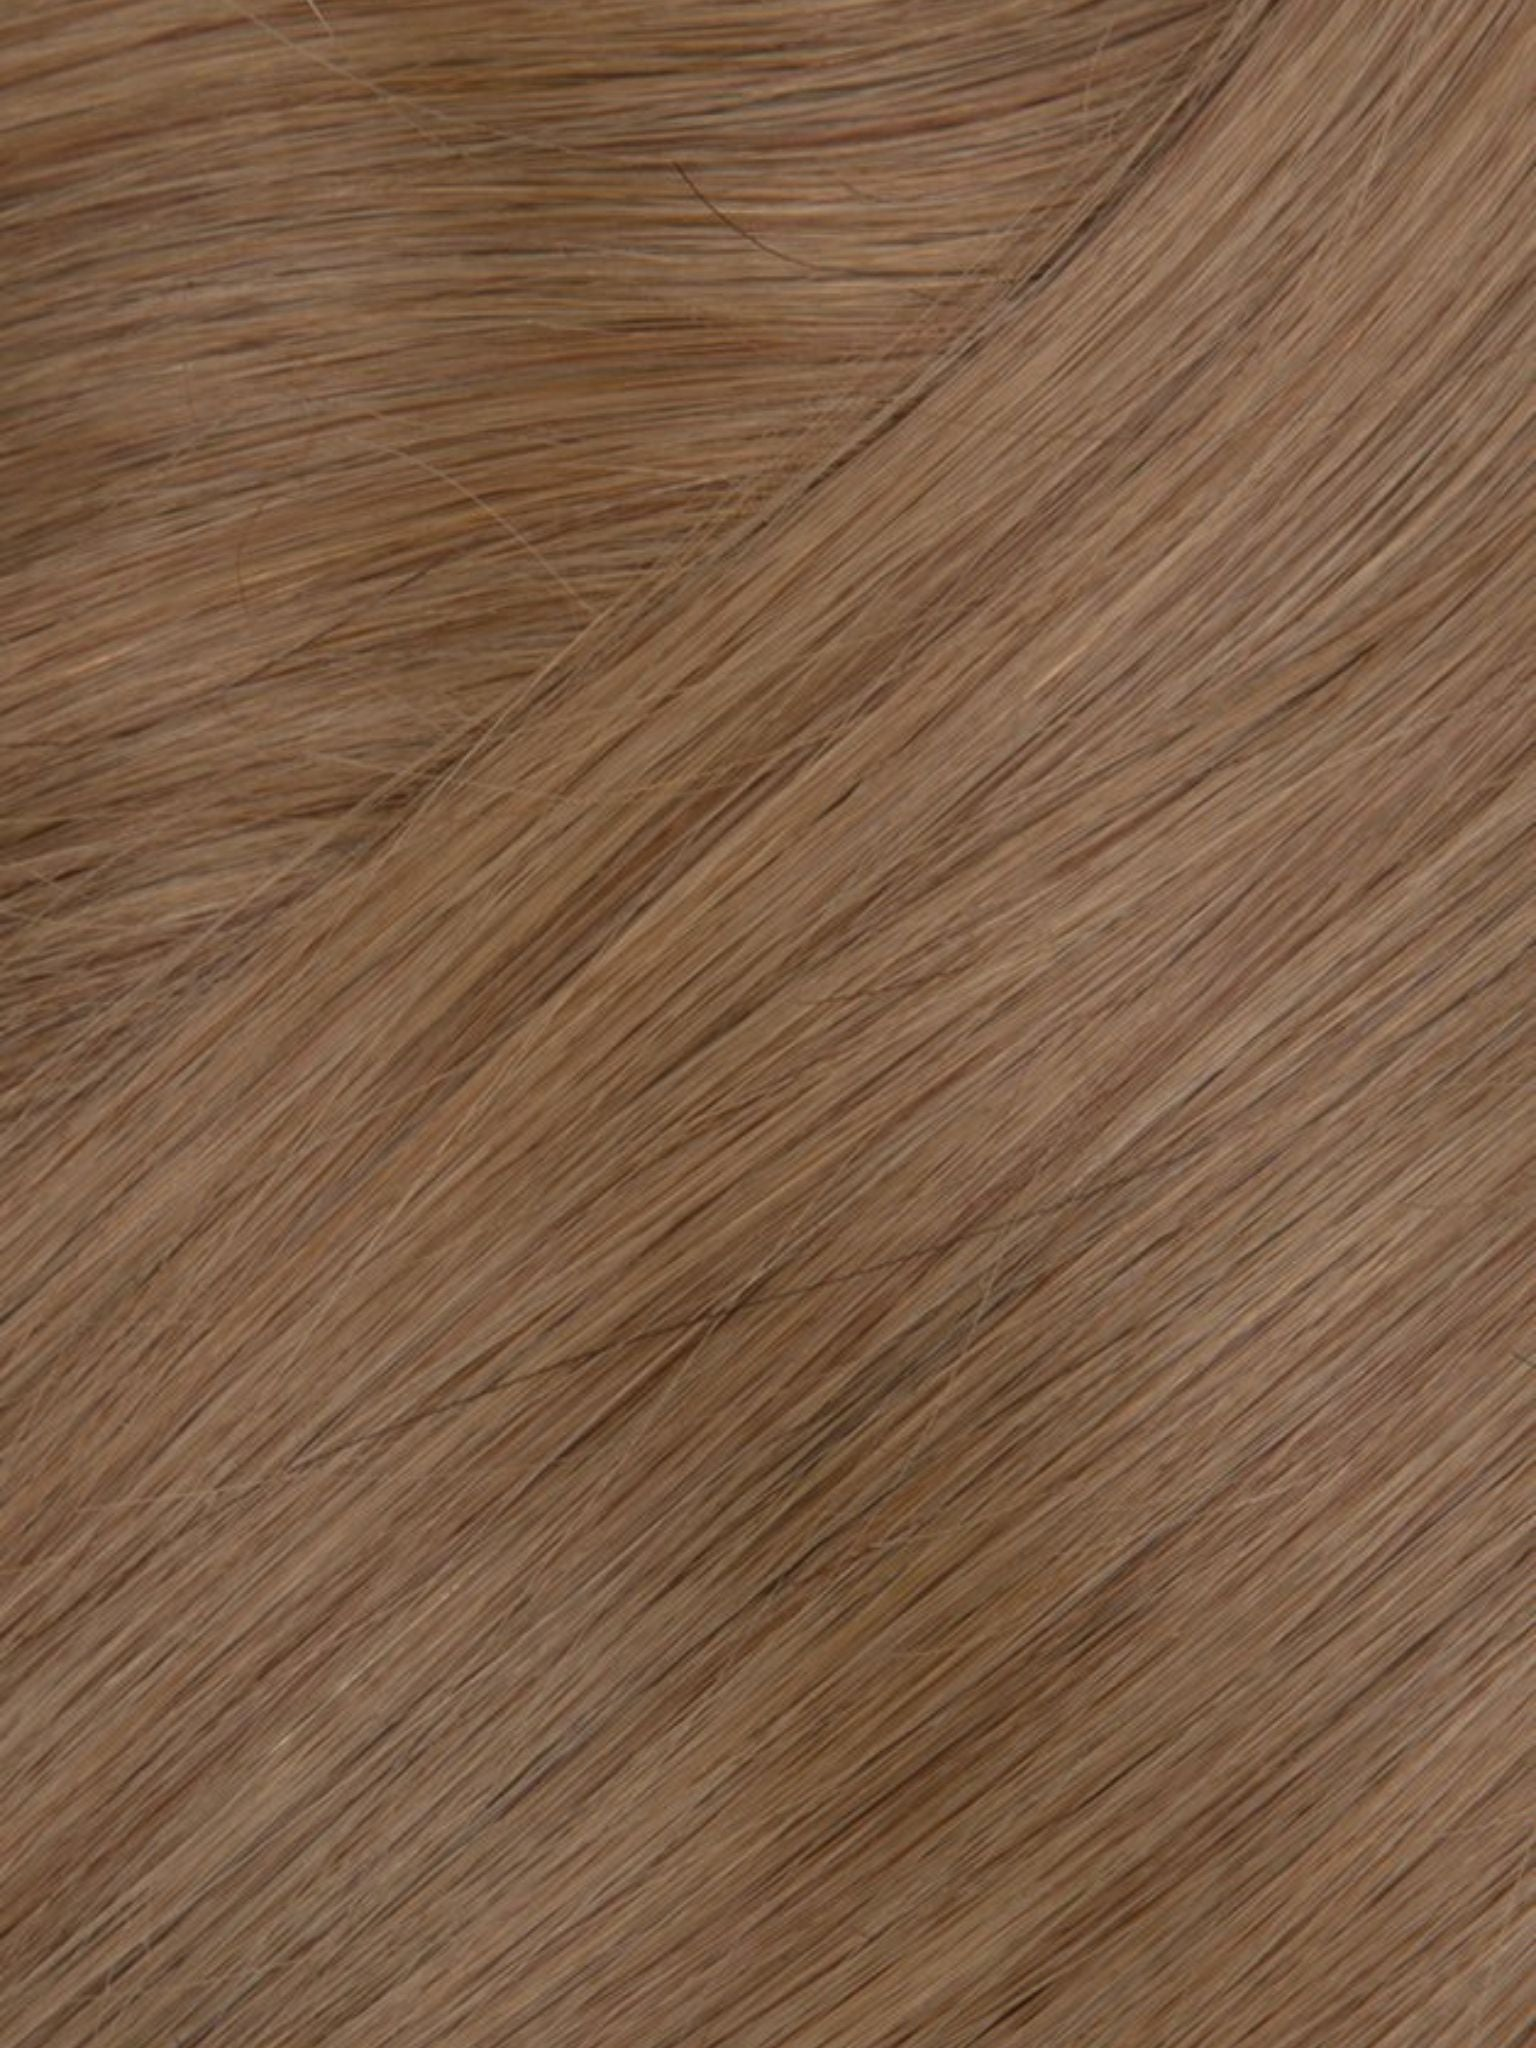 Stick Tip Hair Extensions - Sugar Ash Blonde #10A (TBC)